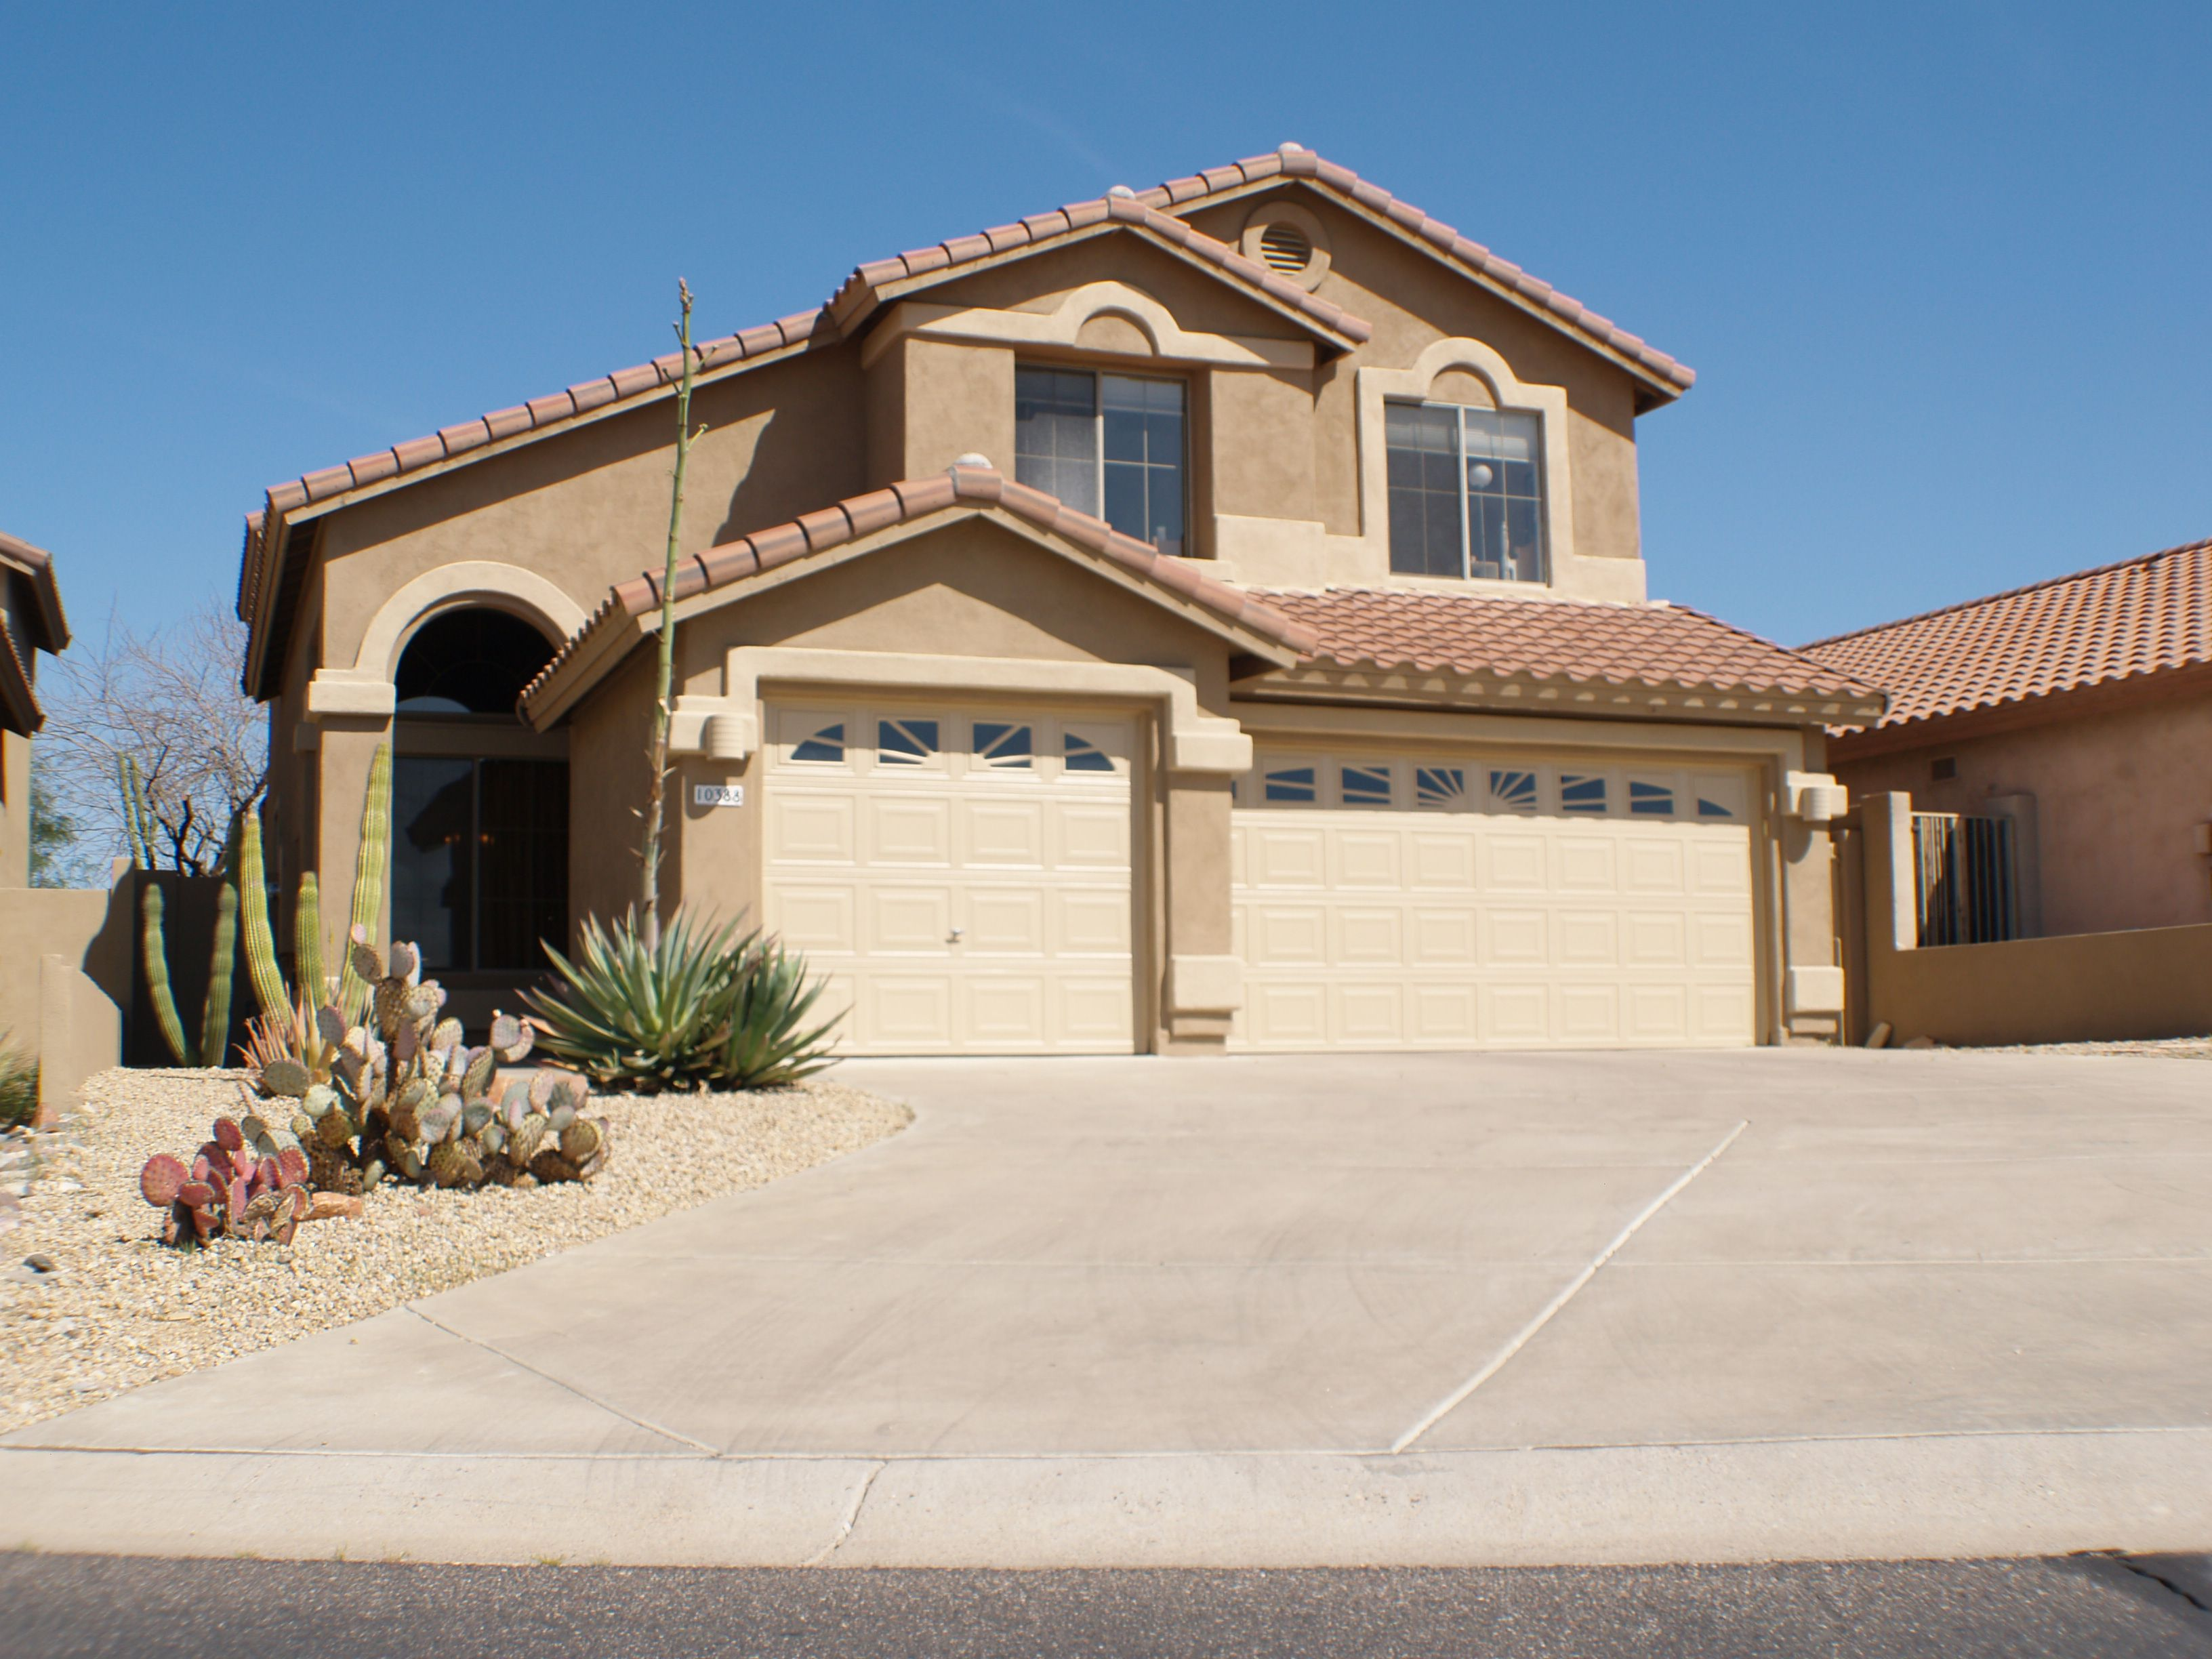 4 Bed 3 Bath Mcdowell Mountain Ranch Home For Sale In